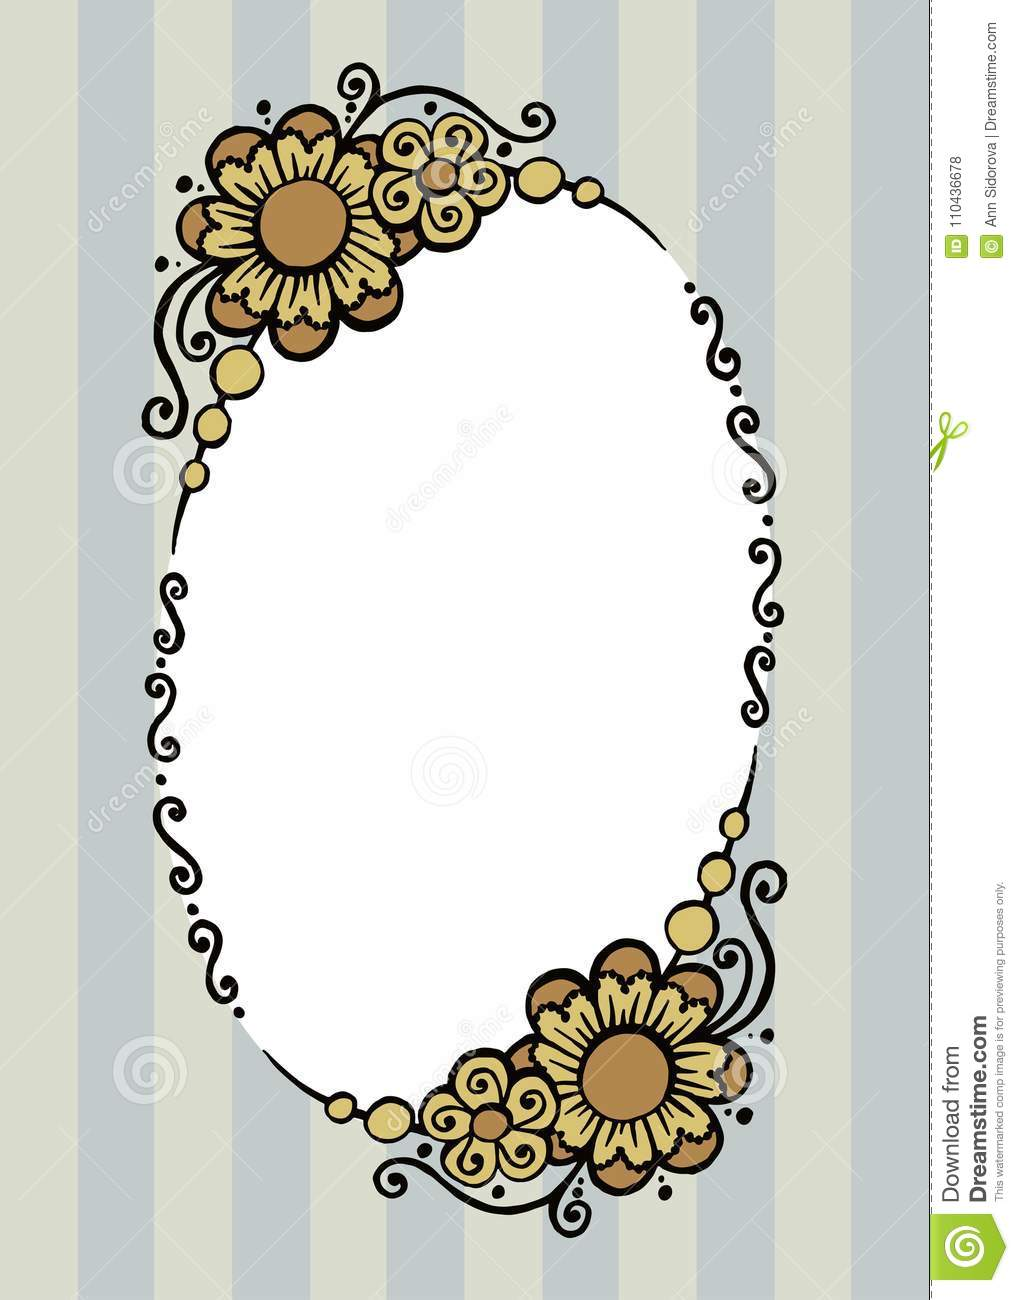 d59551d9681 Beautiful painted colored decorative vector oval frame with flowers and  curls on a striped background with space for your text